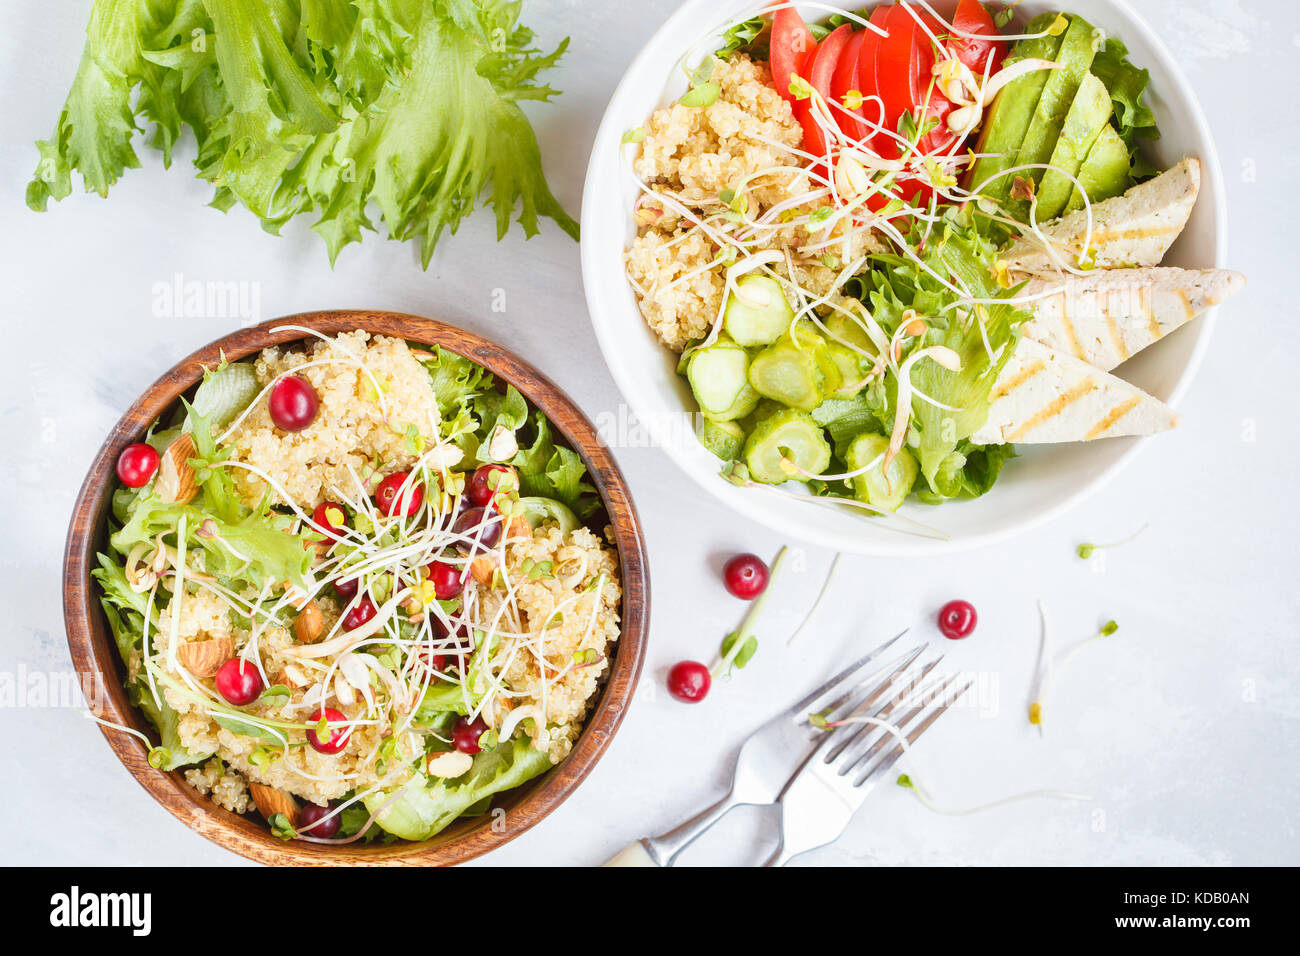 Salads with quinoa and vegetables. Vegan dinner concept, top view. - Stock Image